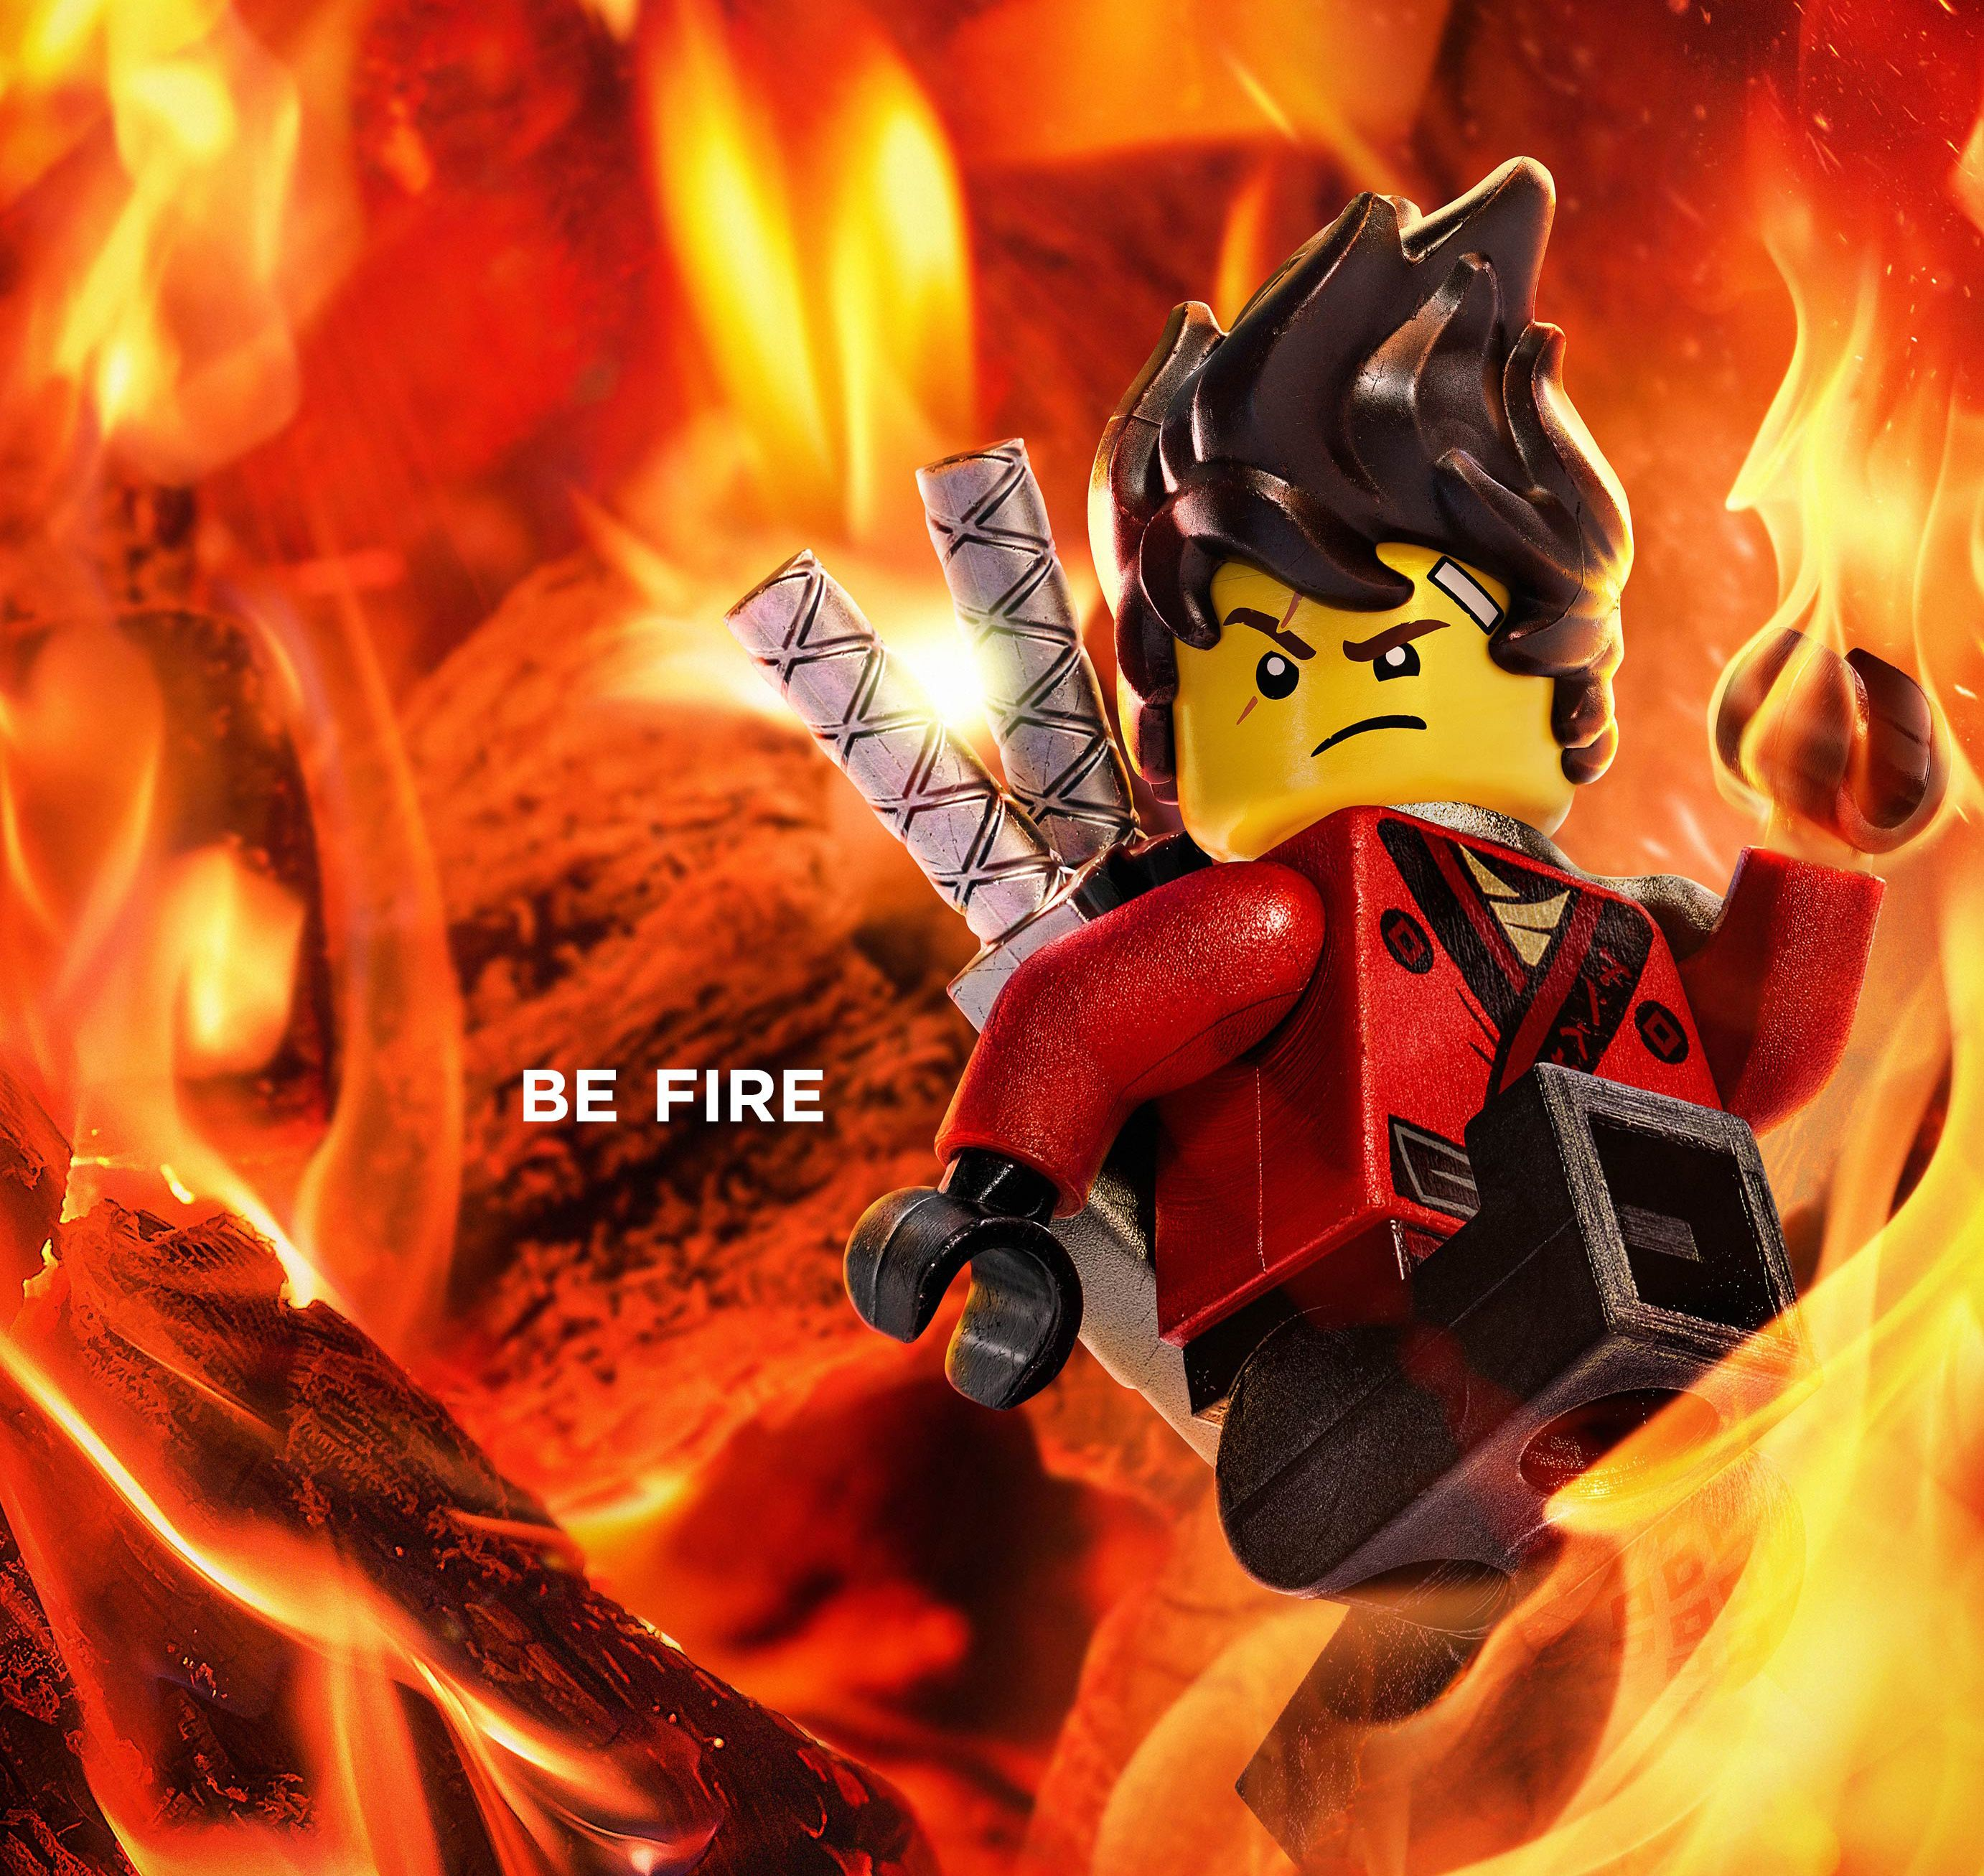 2764x2613 Wallpaper Kai, The Lego Ninjago Movie, Be Fire, Animation, 2017 ...